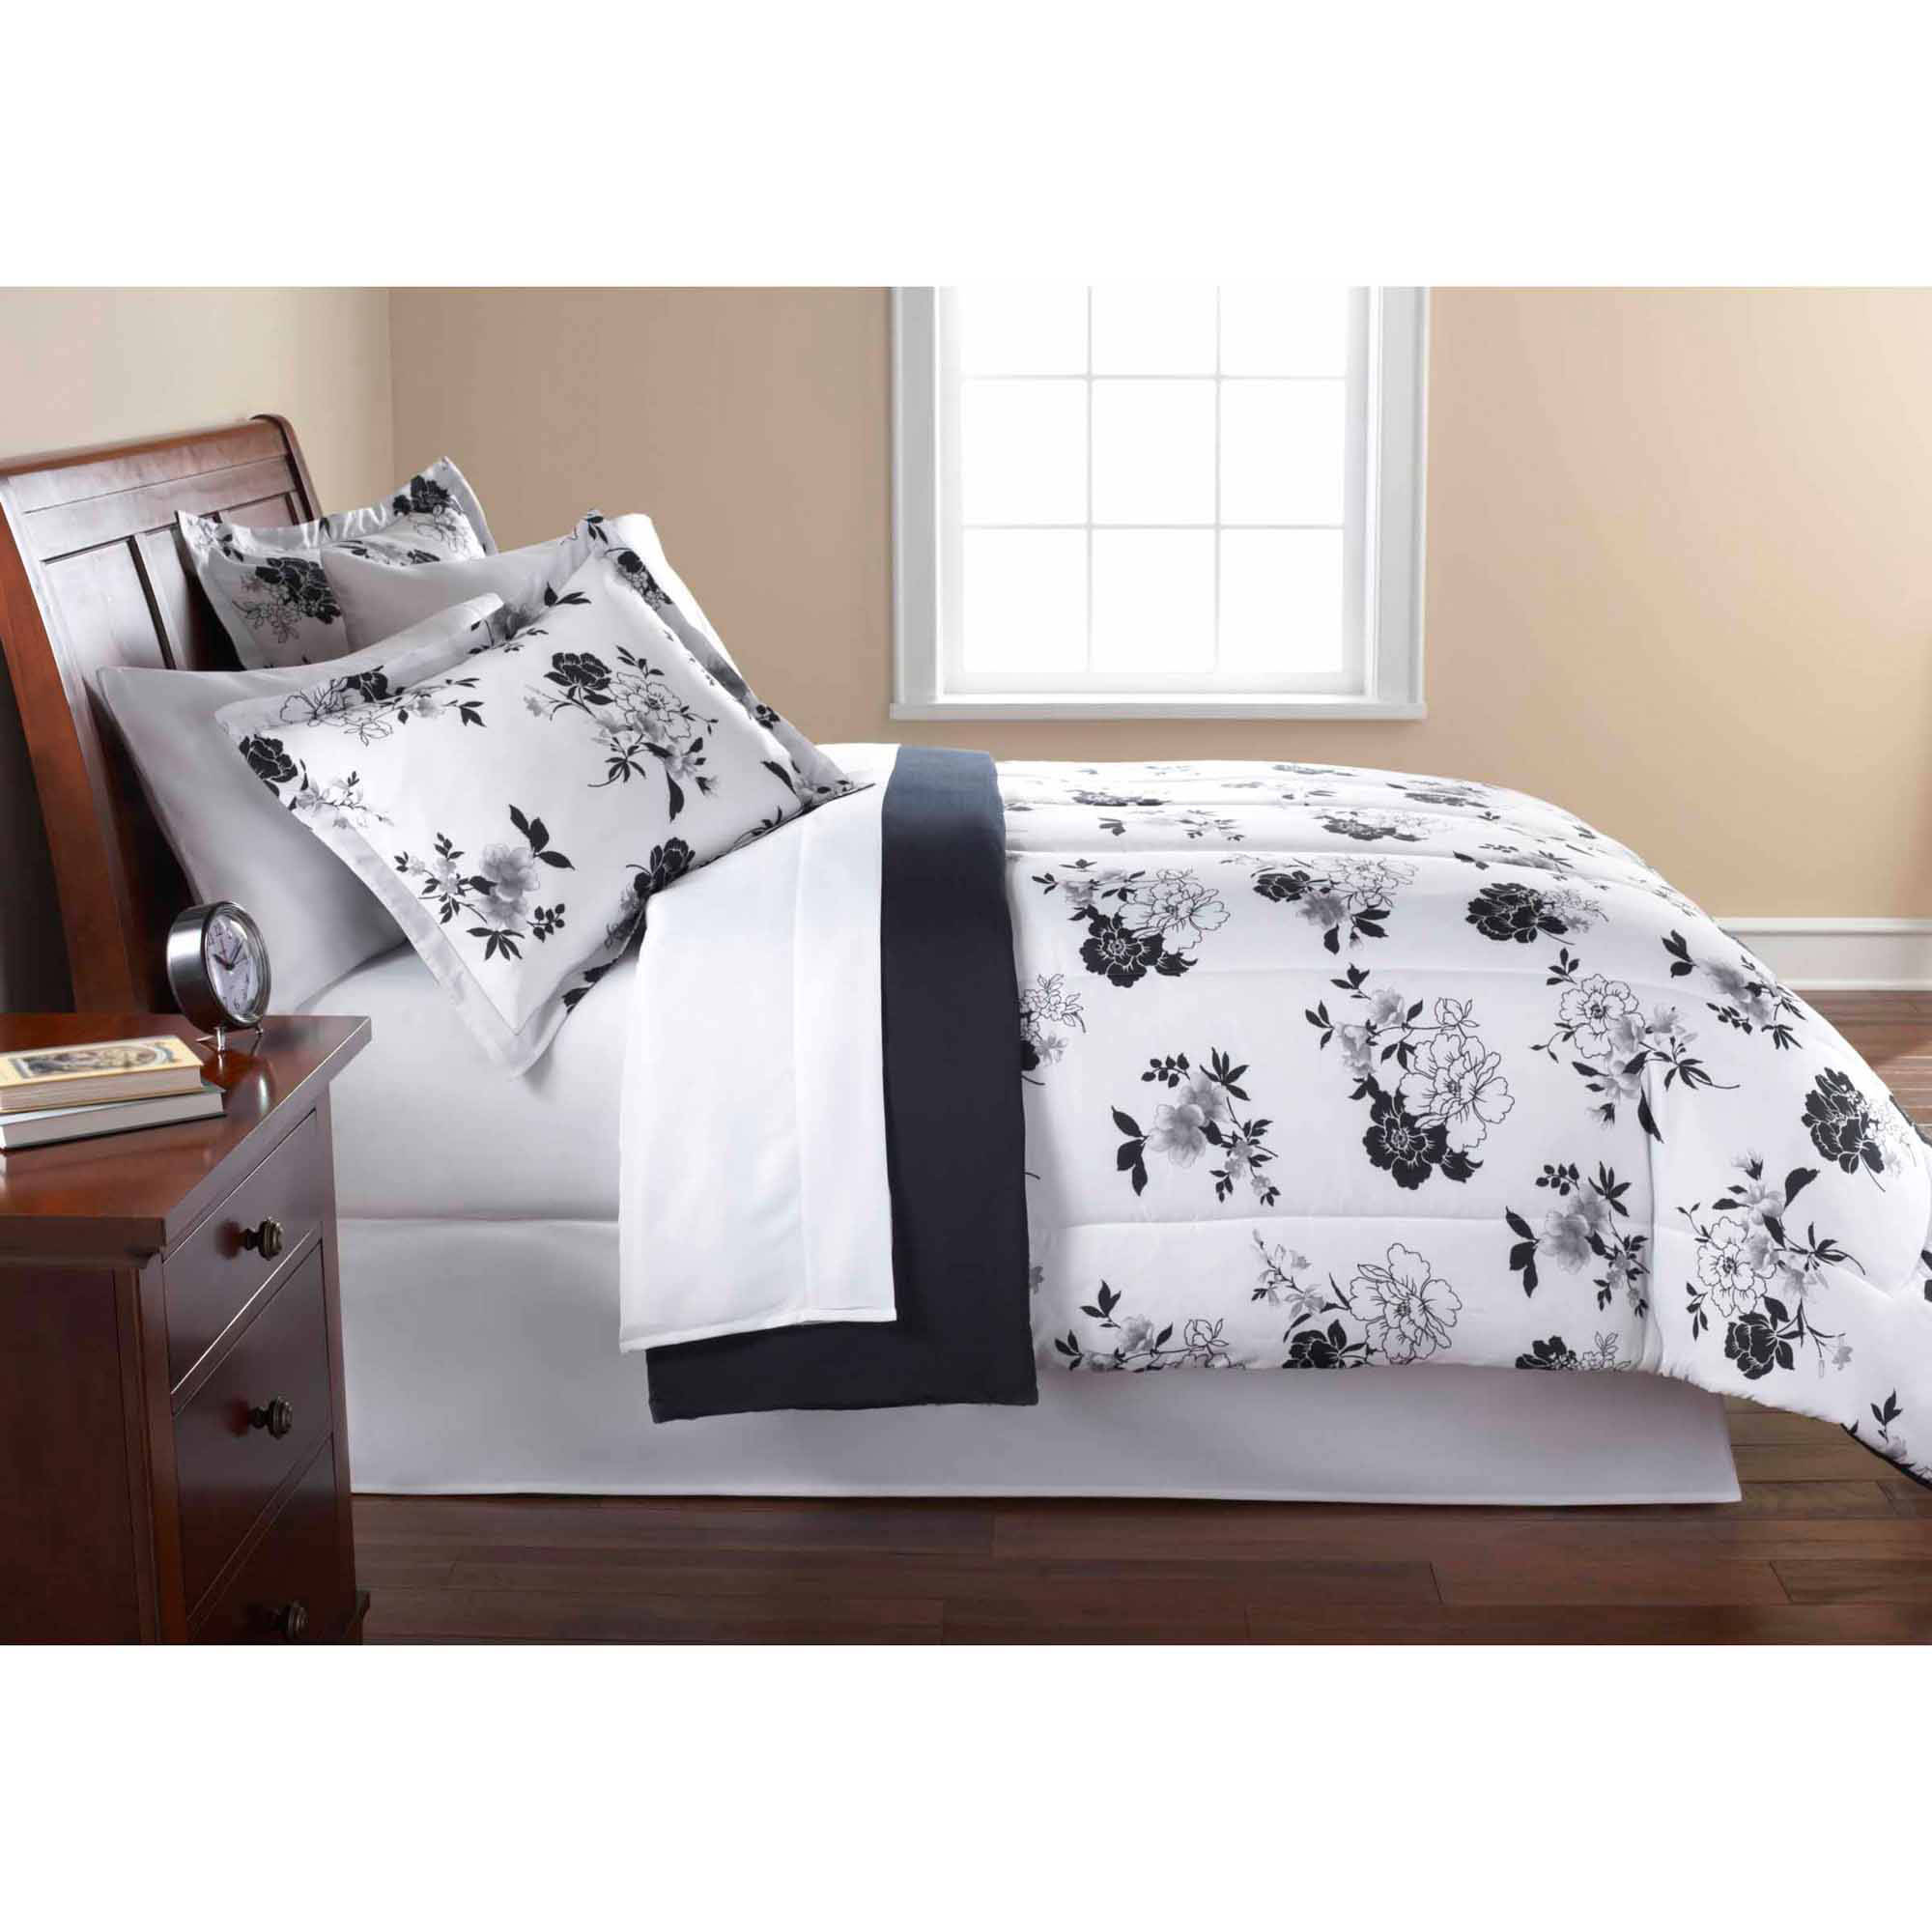 Bed sheet set black and white - Mainstays Black And White Floral Bed In A Bag Bedding Comforter Set Walmart Com